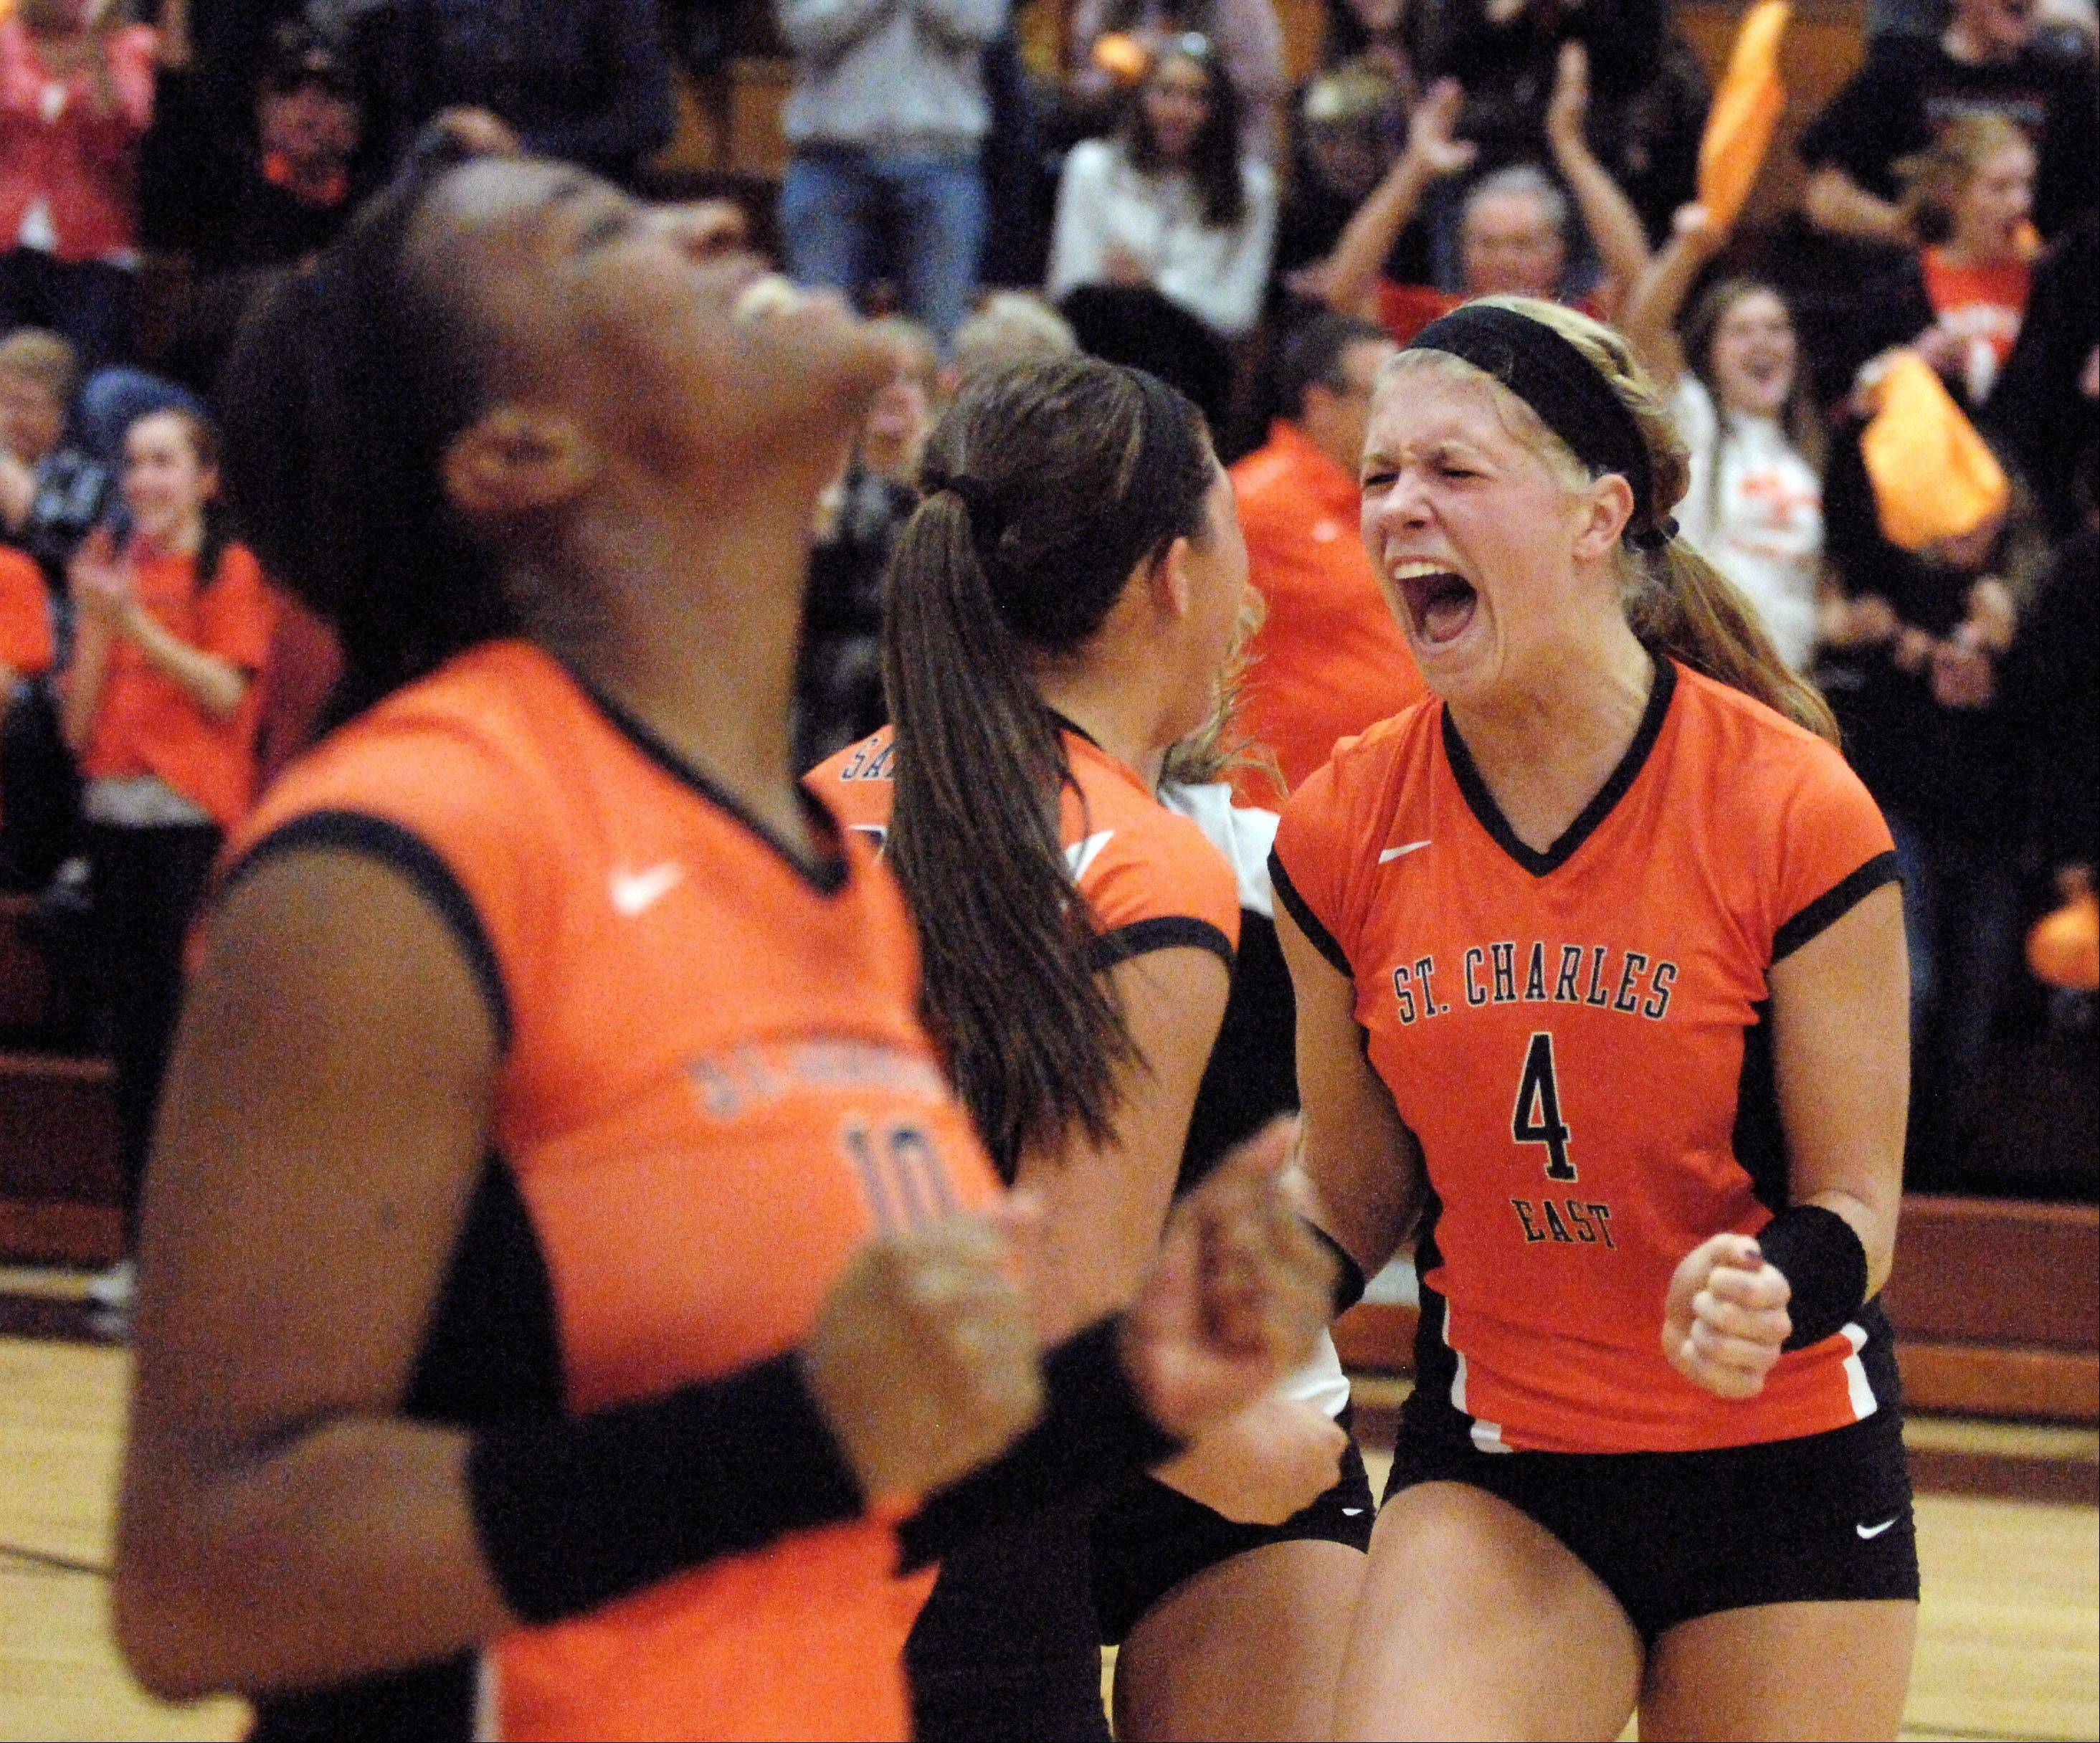 St. Charles East's Meghan Niski, 4, and her teammates erupt as they they score the clinching point and win Thursday's sectional final against York in St. Charles.